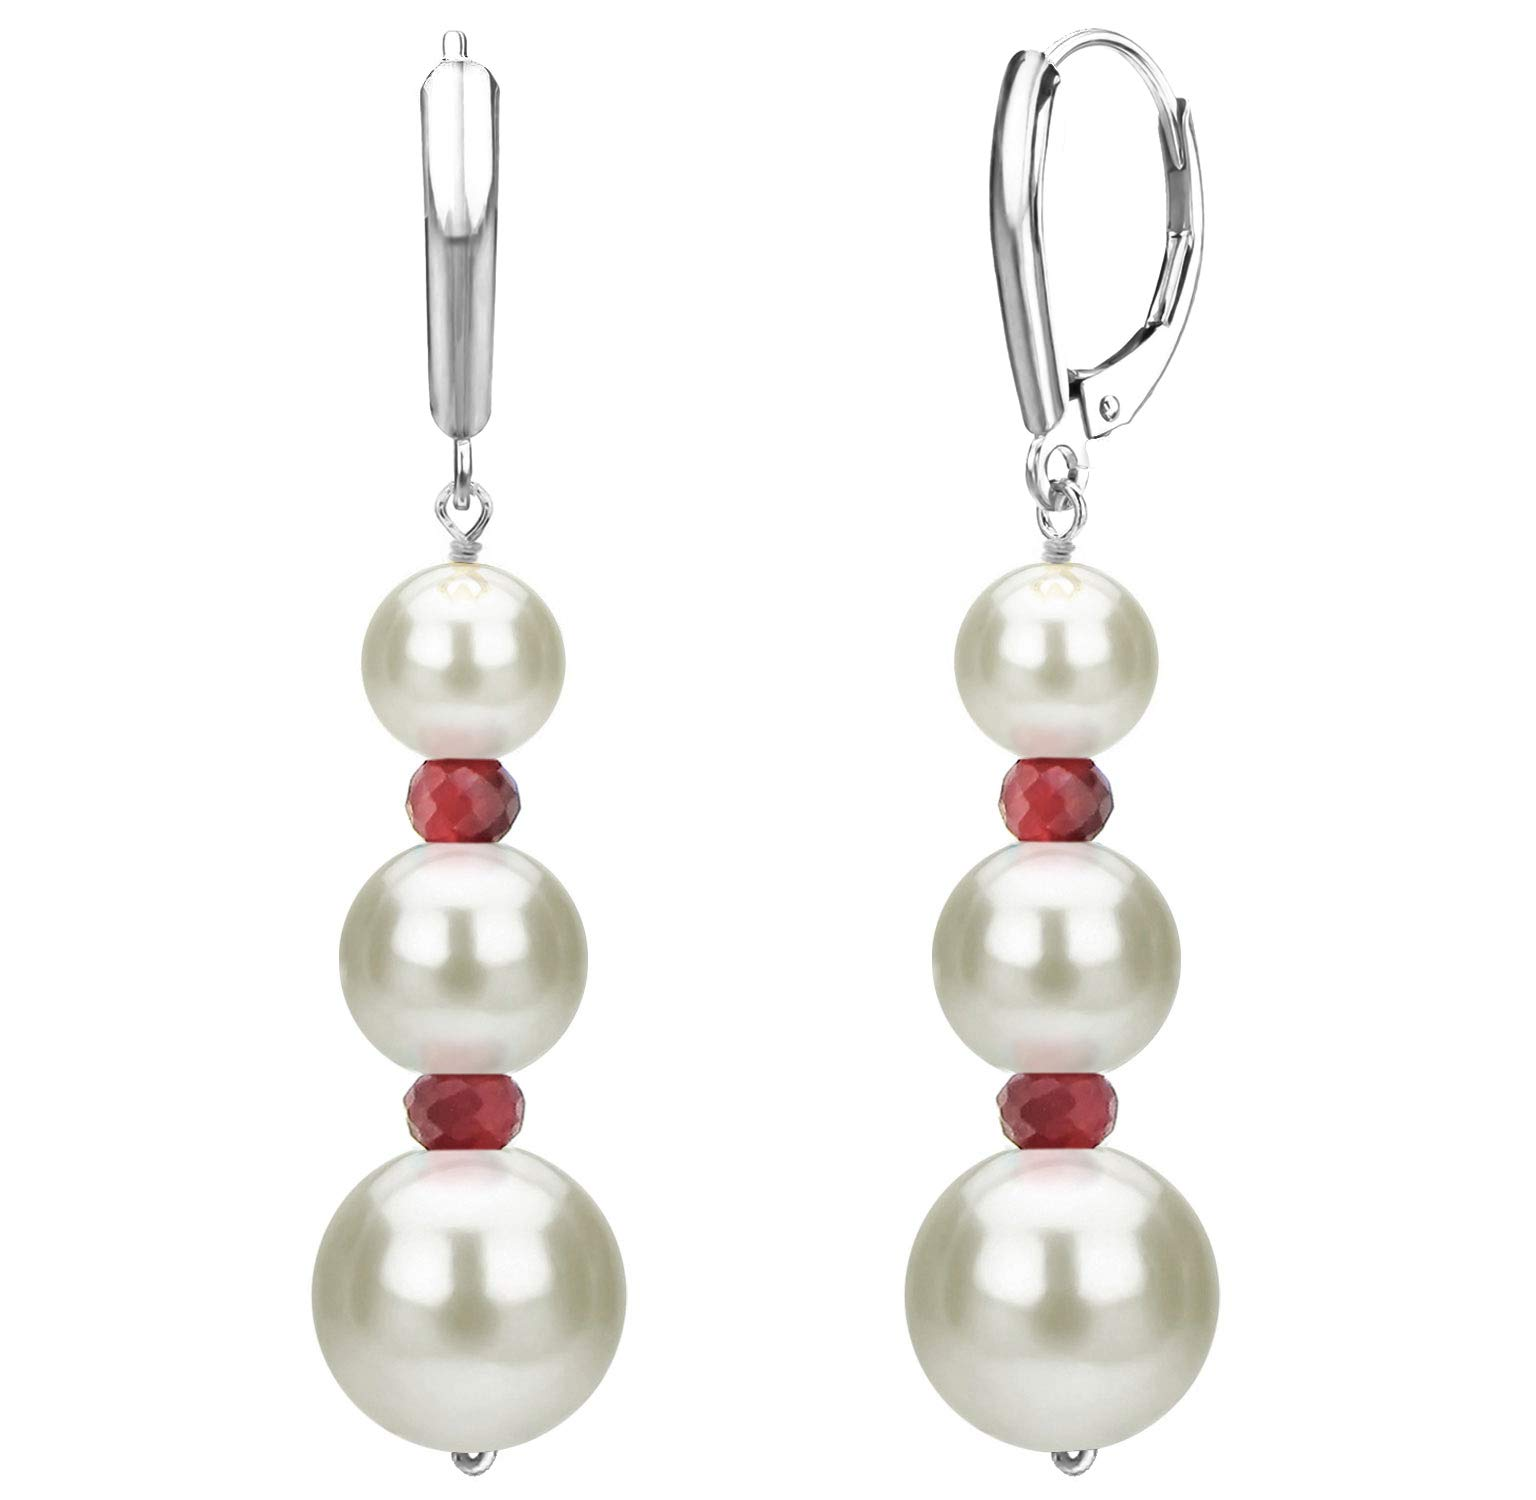 Graduated Freshwater Cultured White Pearl and Simulated Red Ruby Lever-back Earrings in 14k White Gold